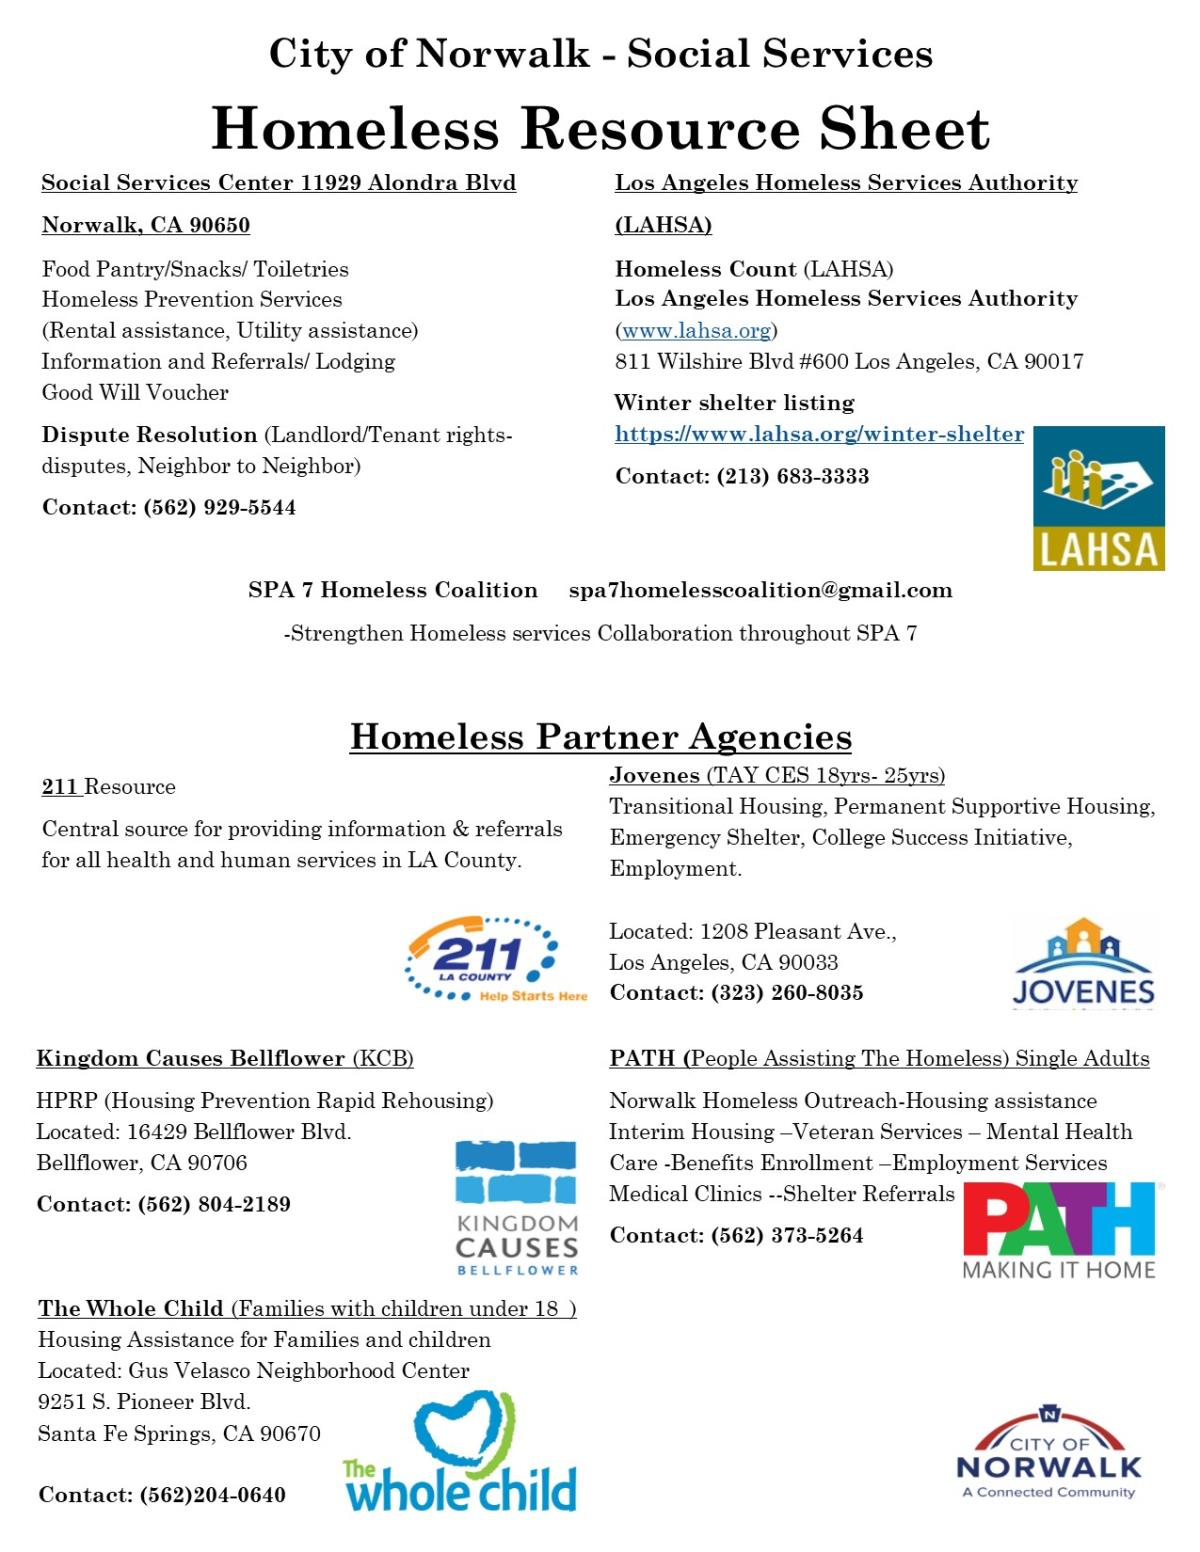 Homeless Resource Sheet 9-18